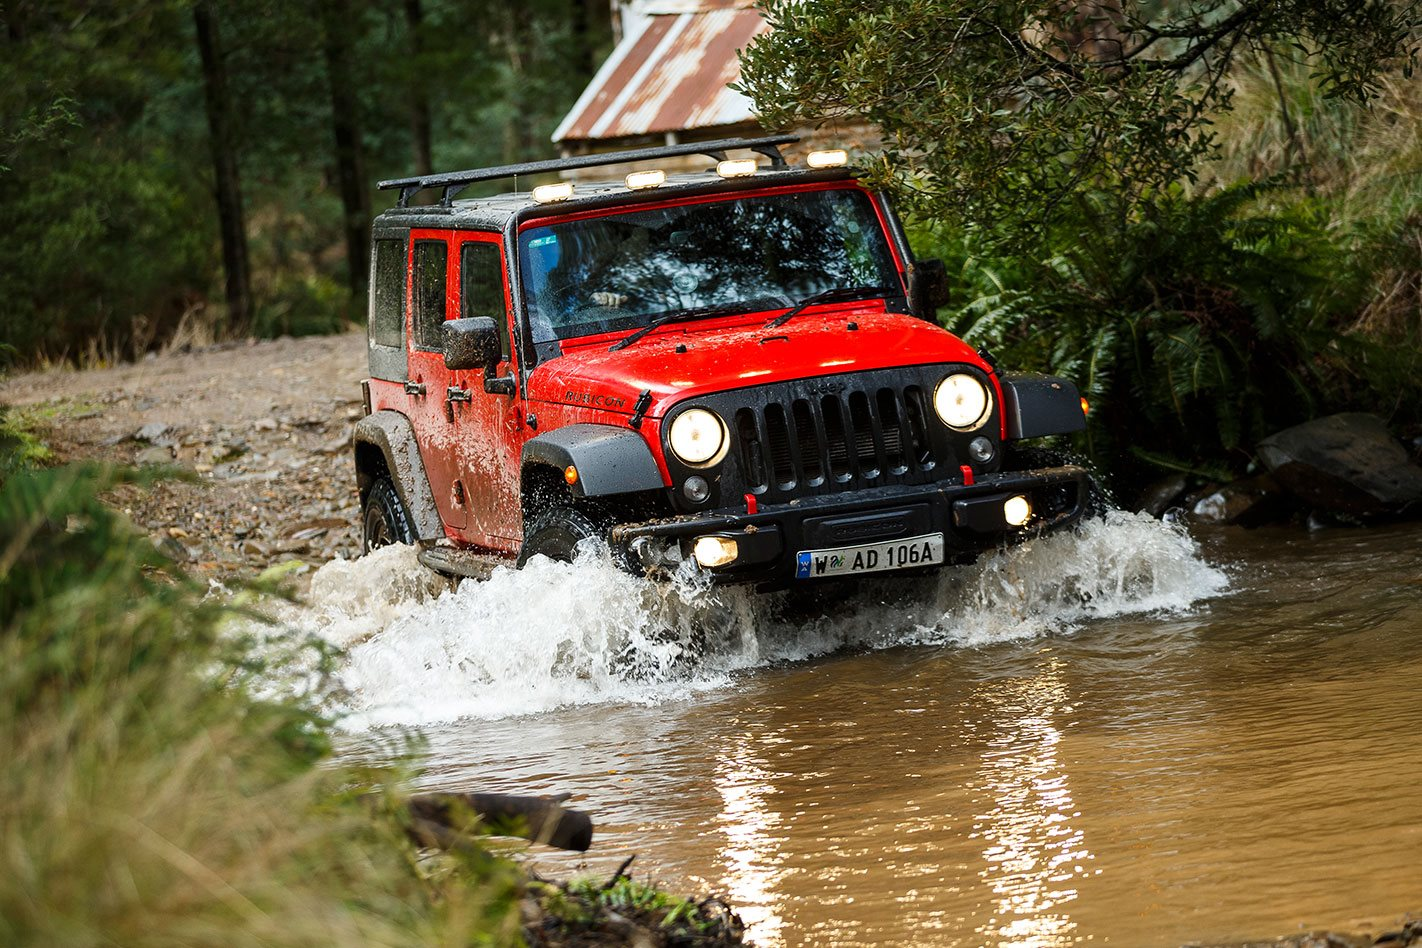 Mopar Jeep JK Wrangler Rubicon Video Review